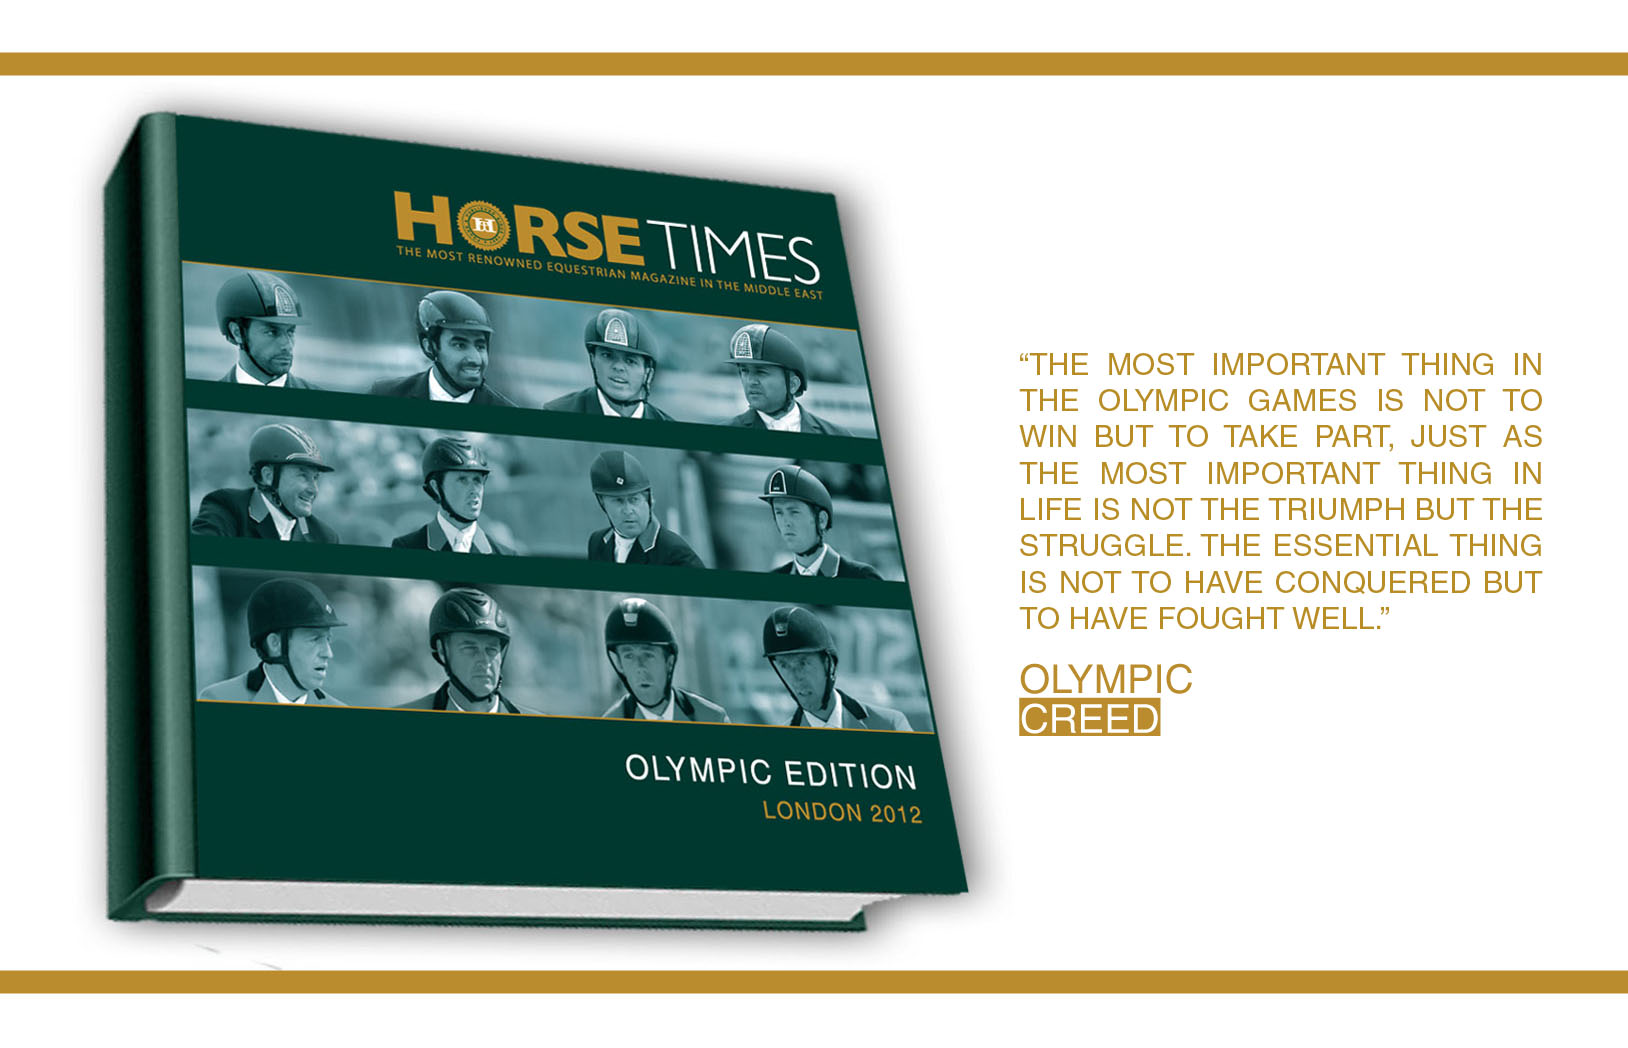 Horse Times Egypt: Equestrian Magazine :News :LAUNCH OF HORSE TIMES LONDON 2012 OLYMPIC EDITION